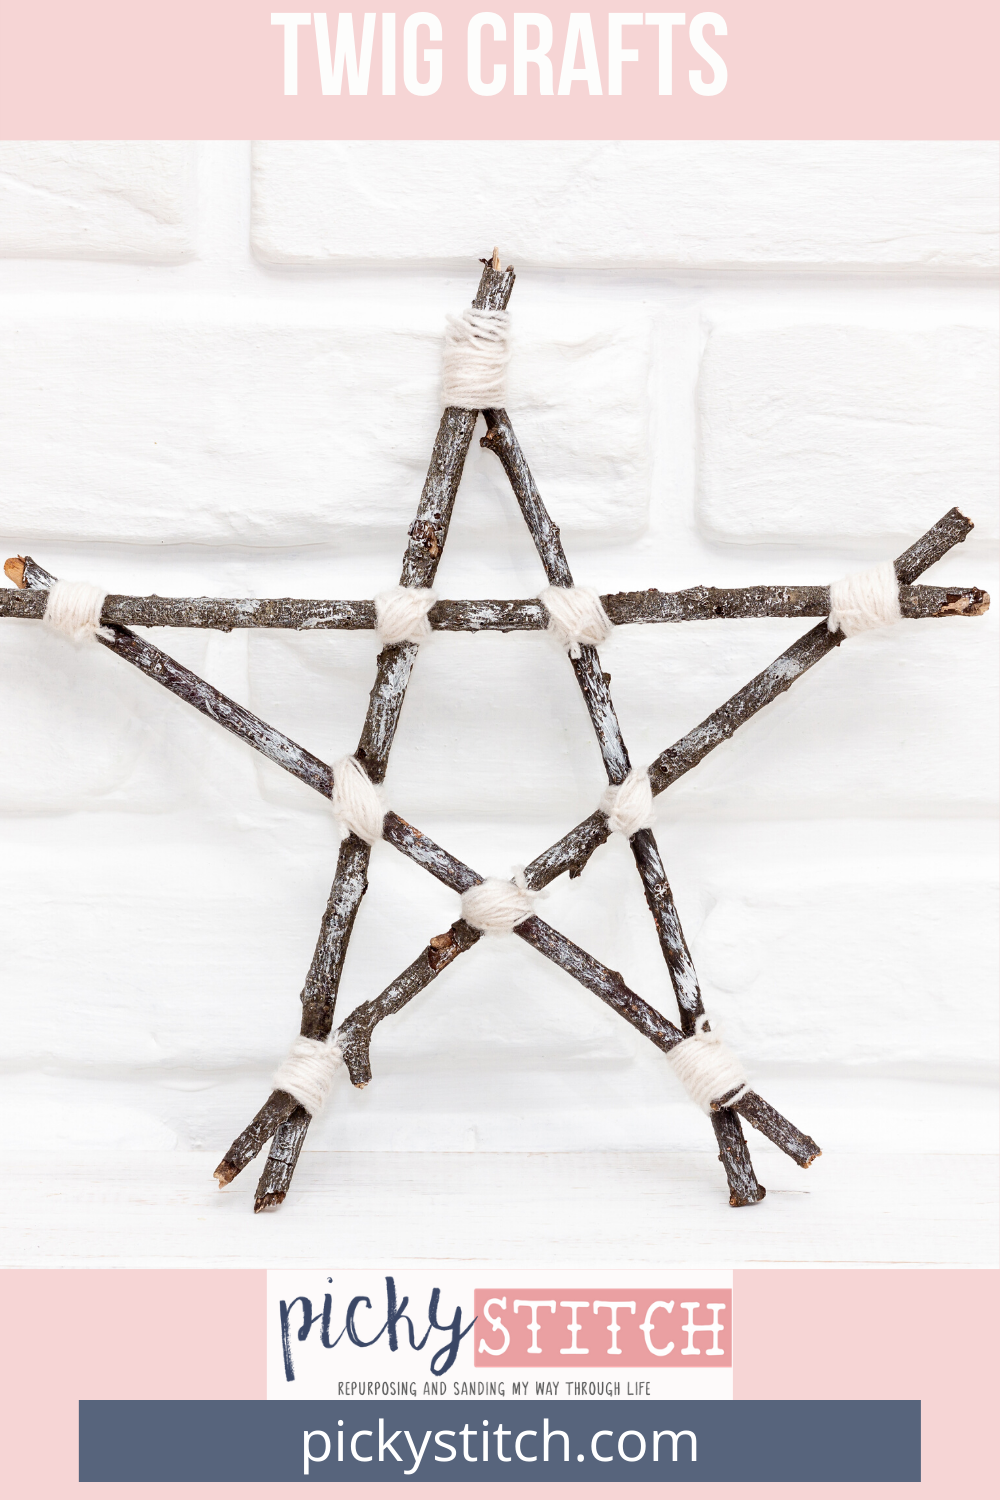 Pick Up Twigs To Make These Crafts